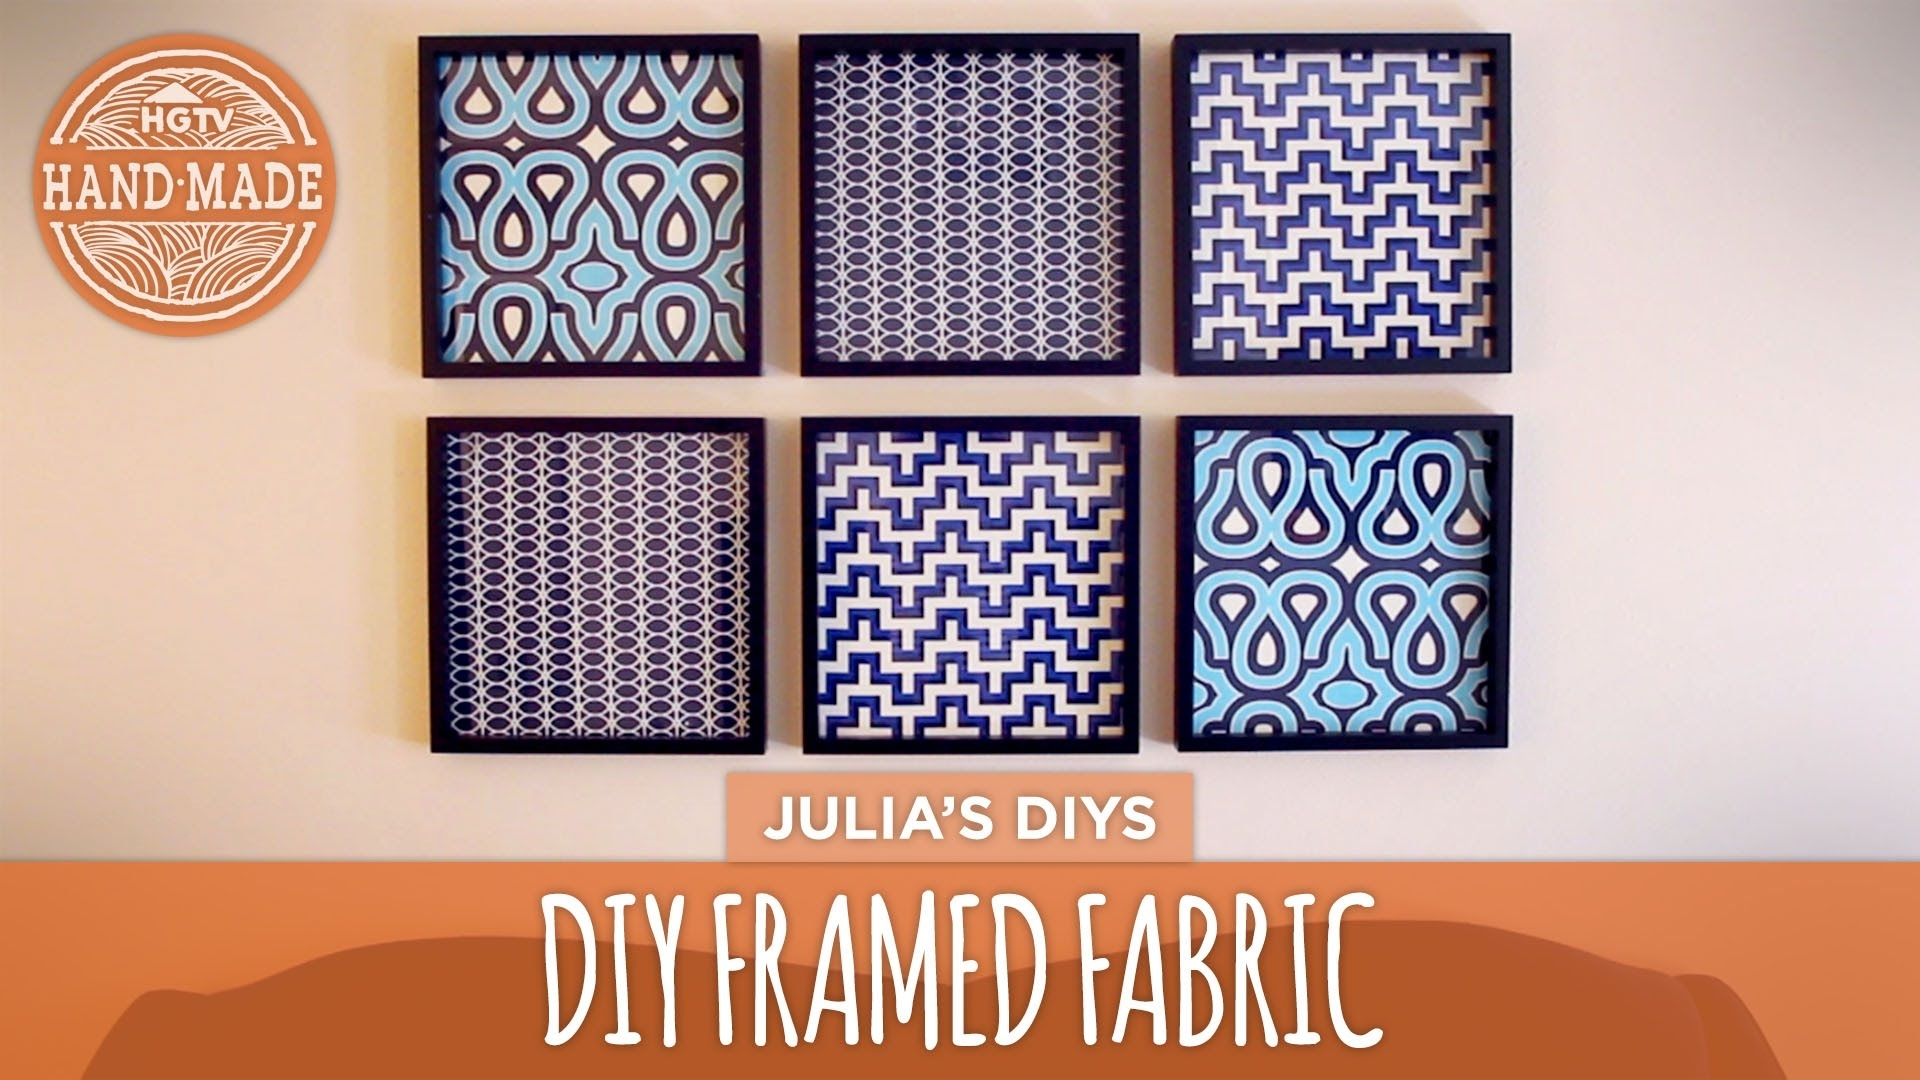 Diy Framed Fabric Gallery Wall – Hgtv Handmade – Youtube Within Best And Newest Handmade Fabric Wall Art (View 13 of 15)